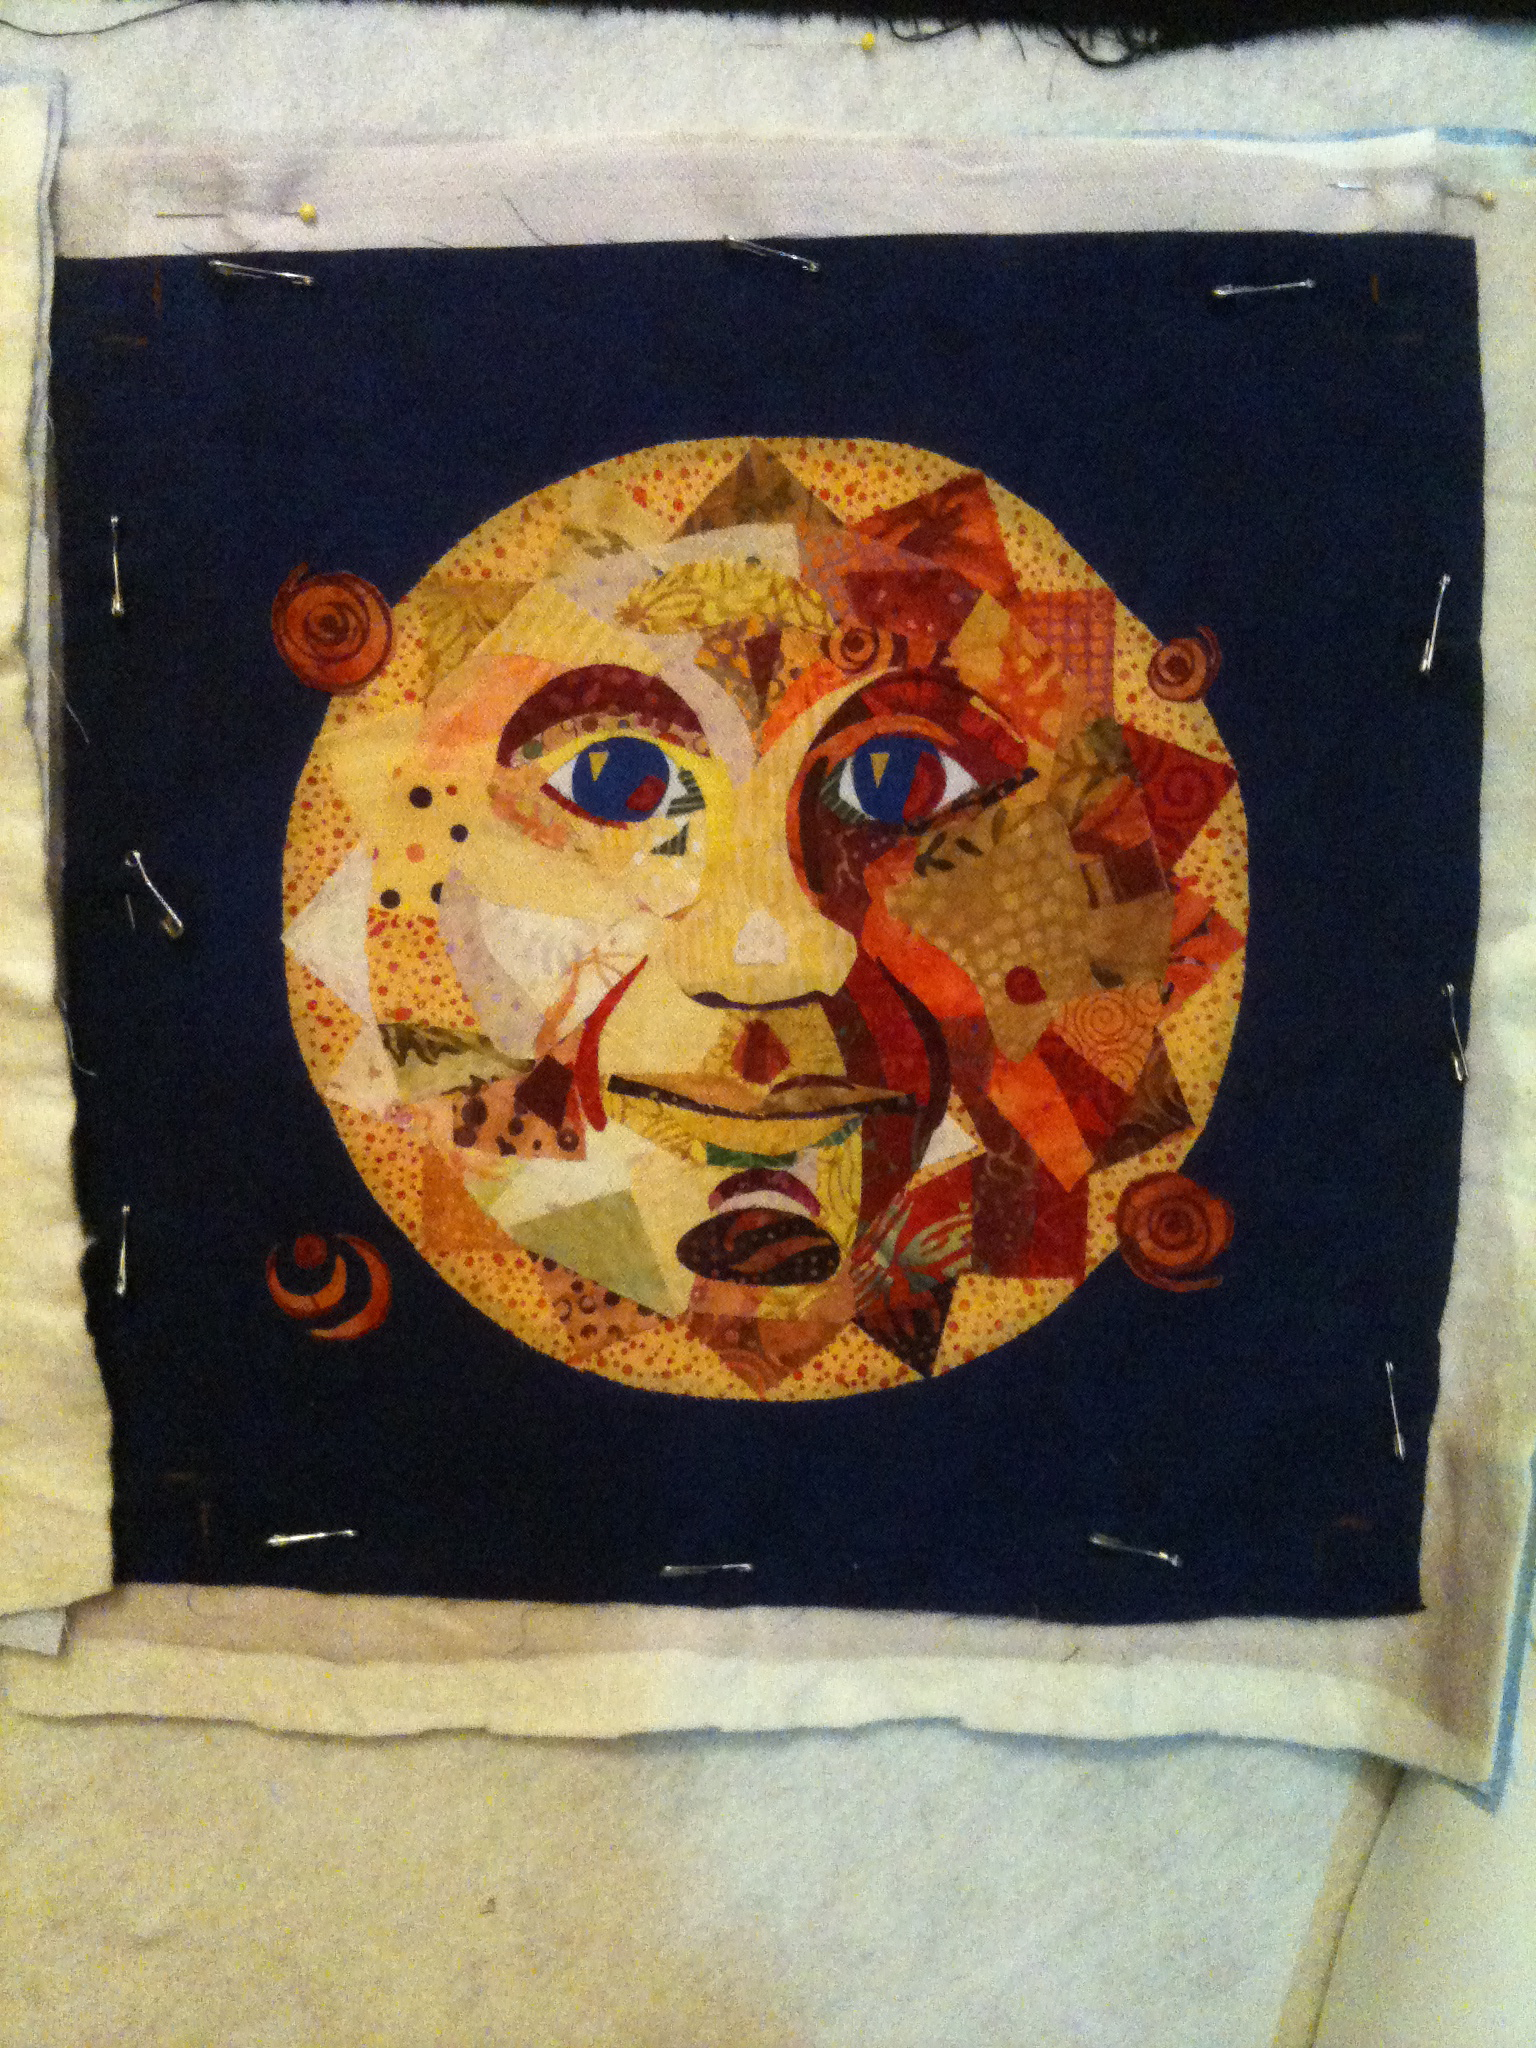 Creating fiber art through quilting allows me to stretch my ... : serendipity quilts susan carlson - Adamdwight.com